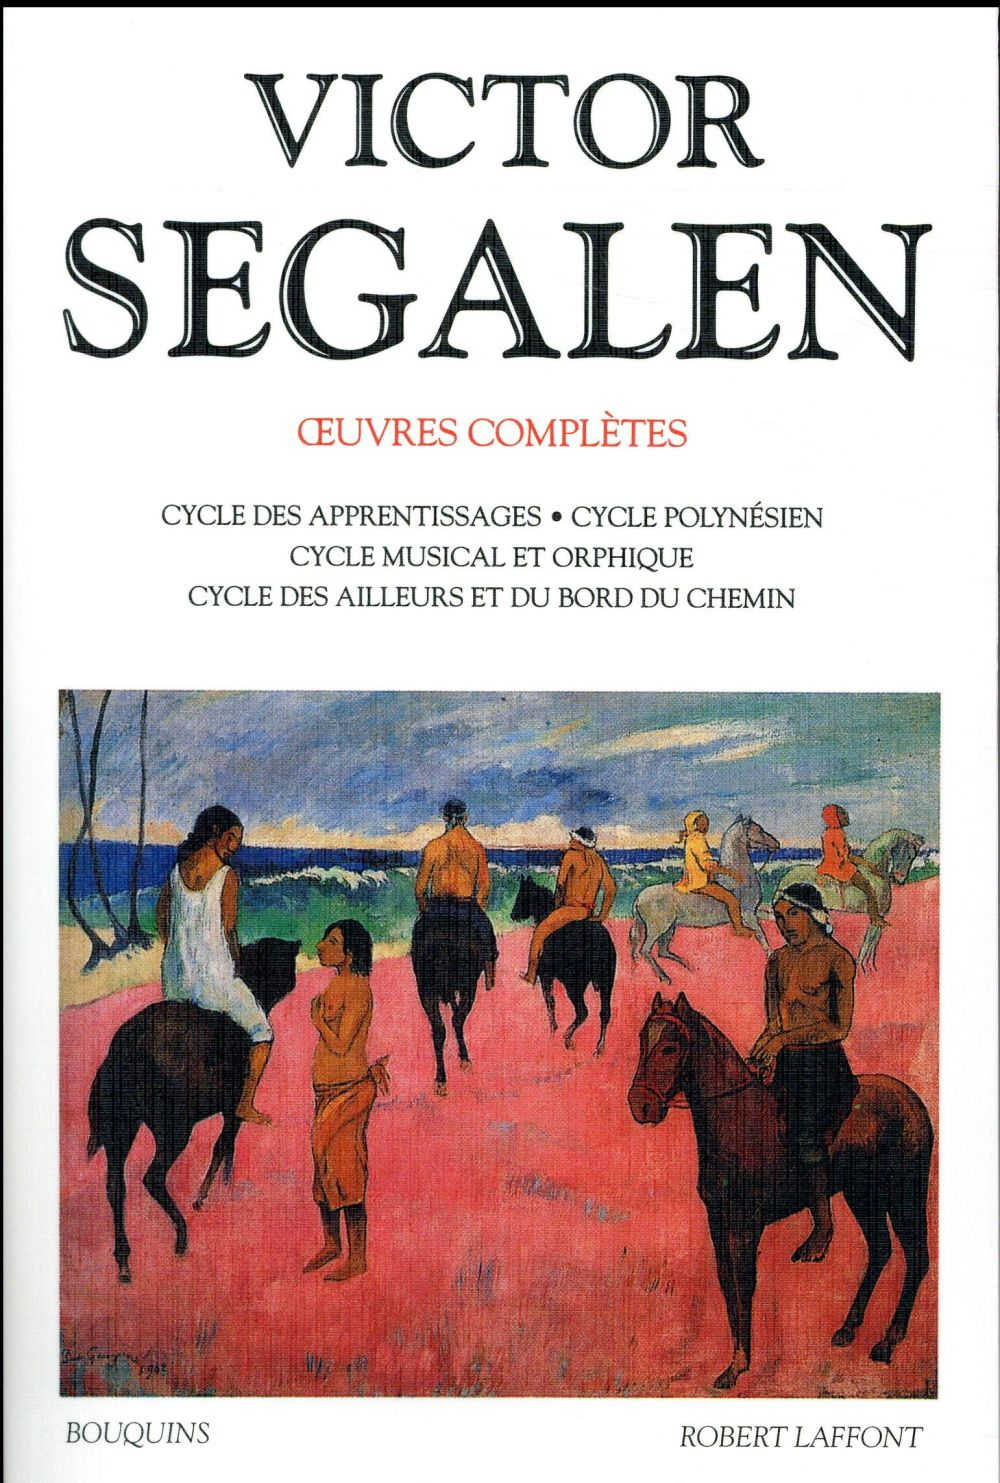 VICTOR SEGALEN - TOME 1 - OEUVRES COMPLETES